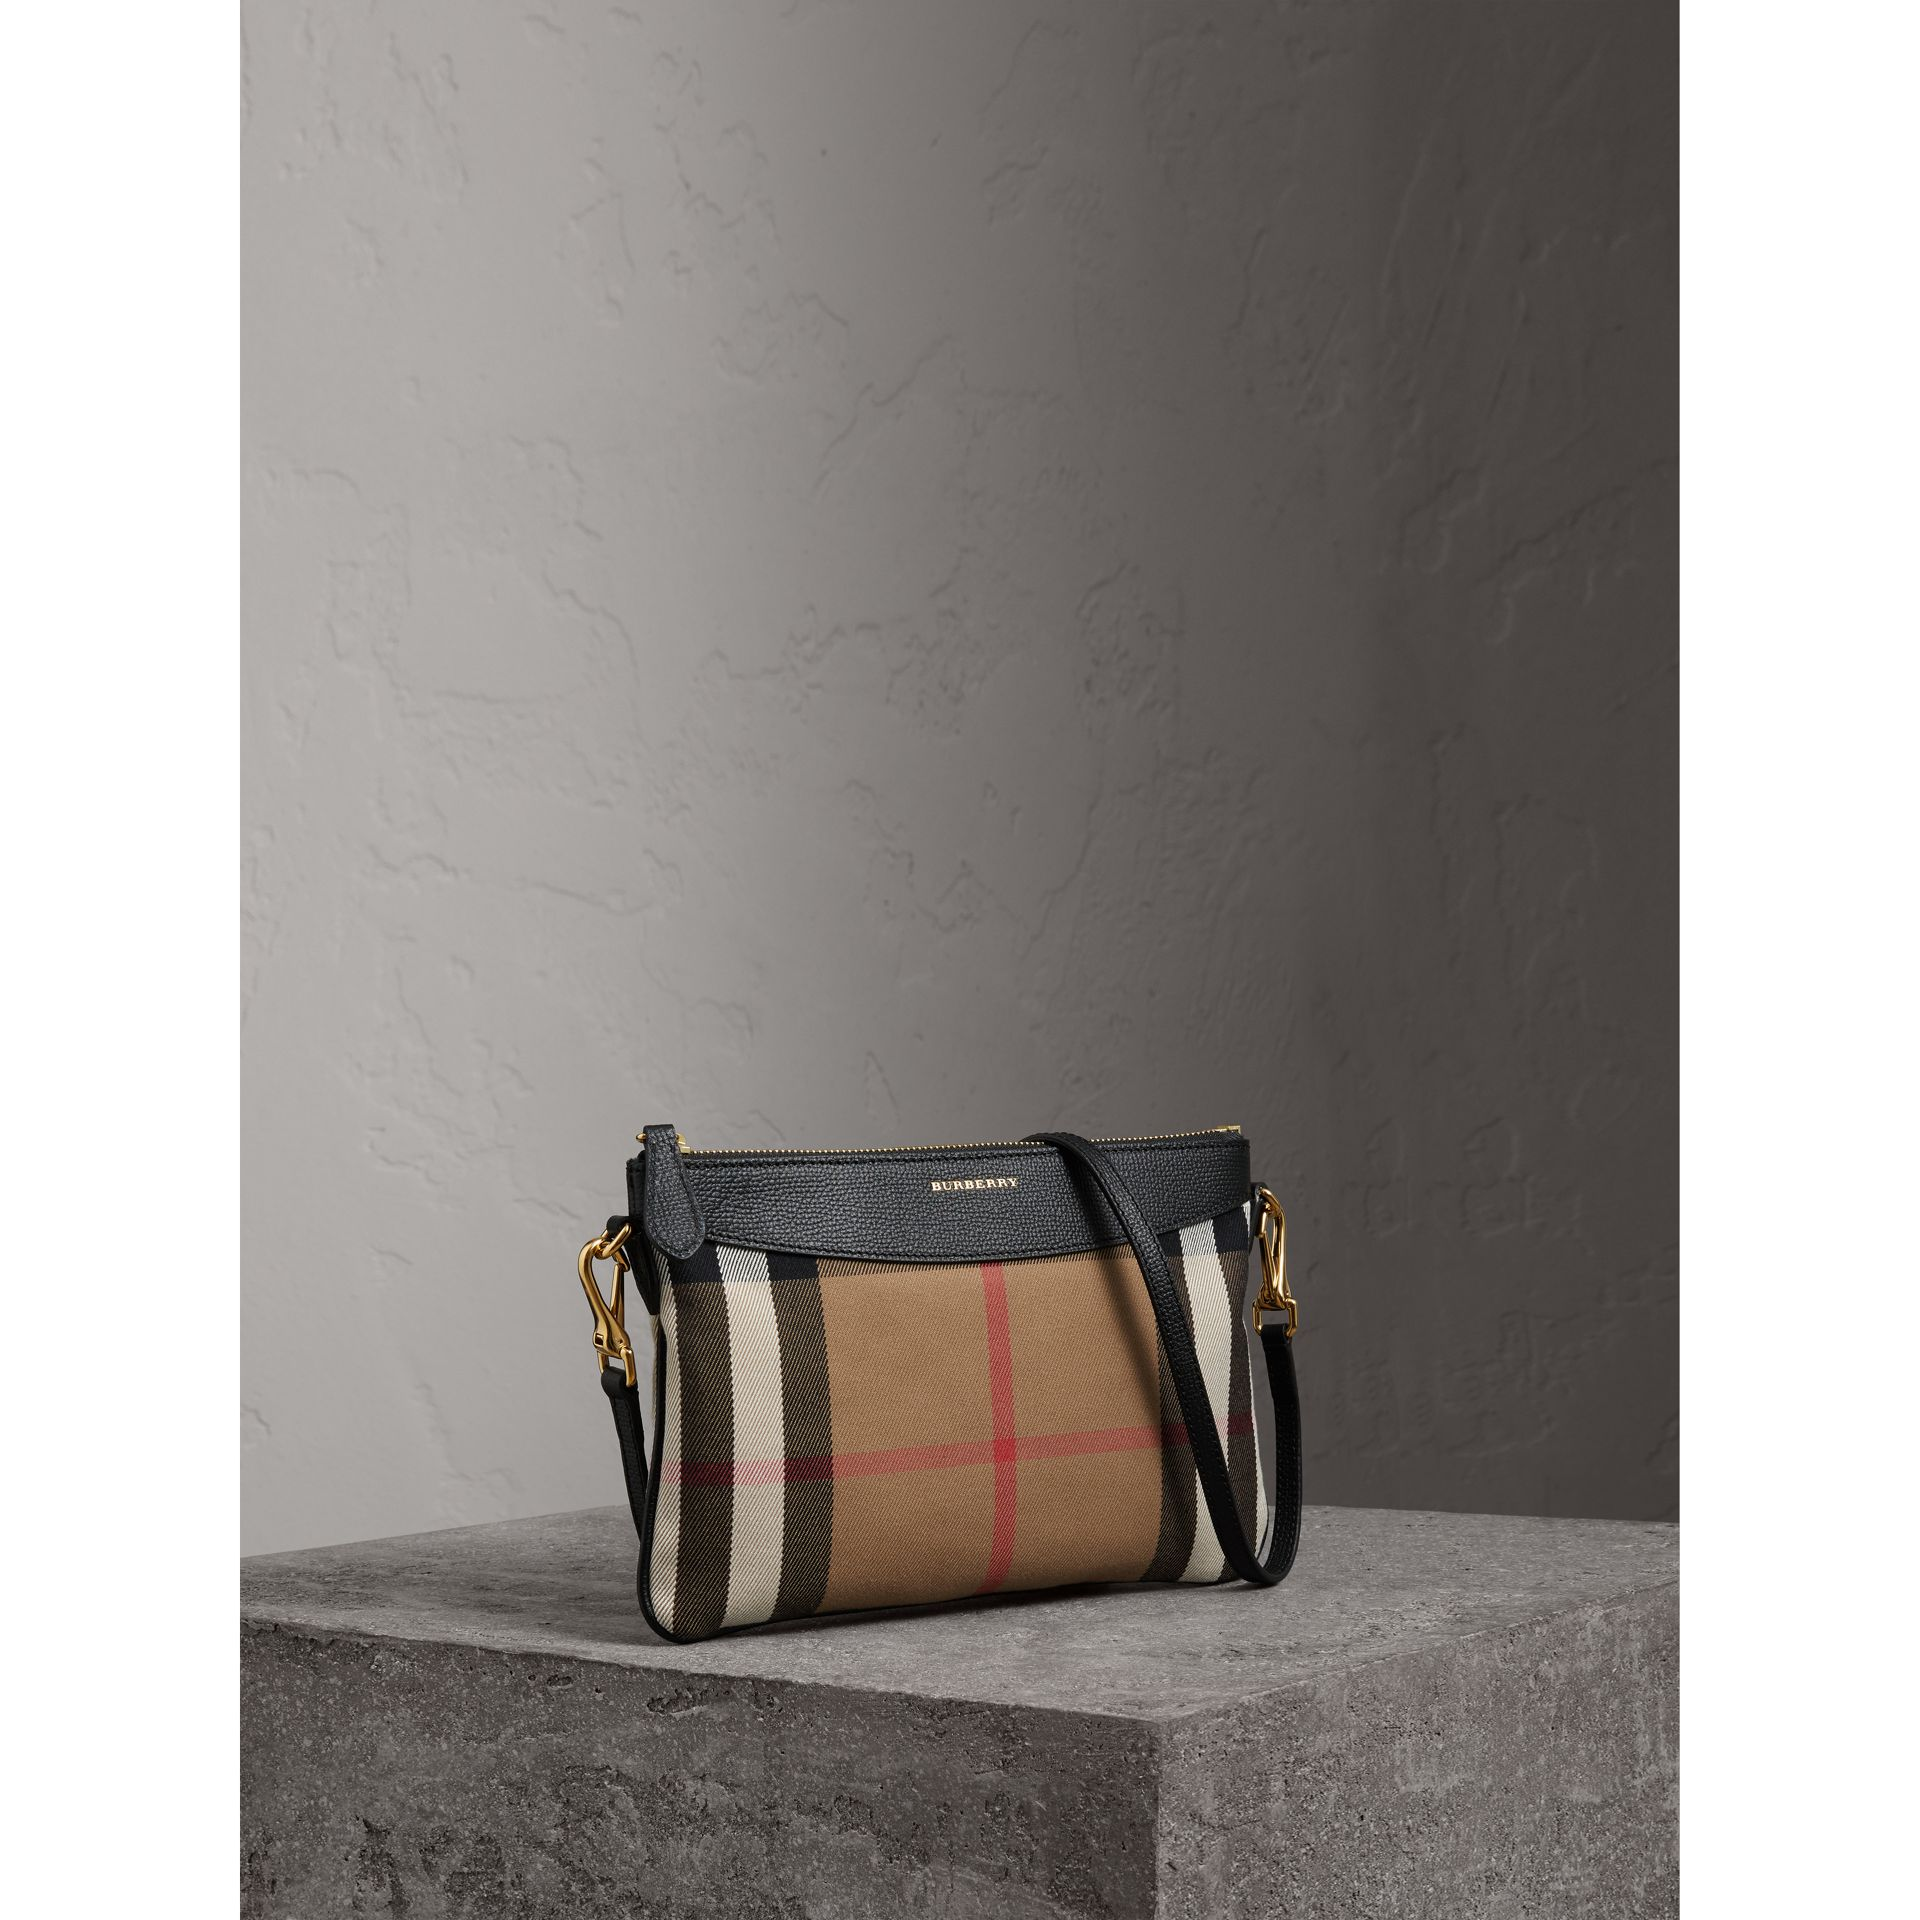 House Check and Leather Clutch Bag in Black - Women | Burberry Singapore - gallery image 6